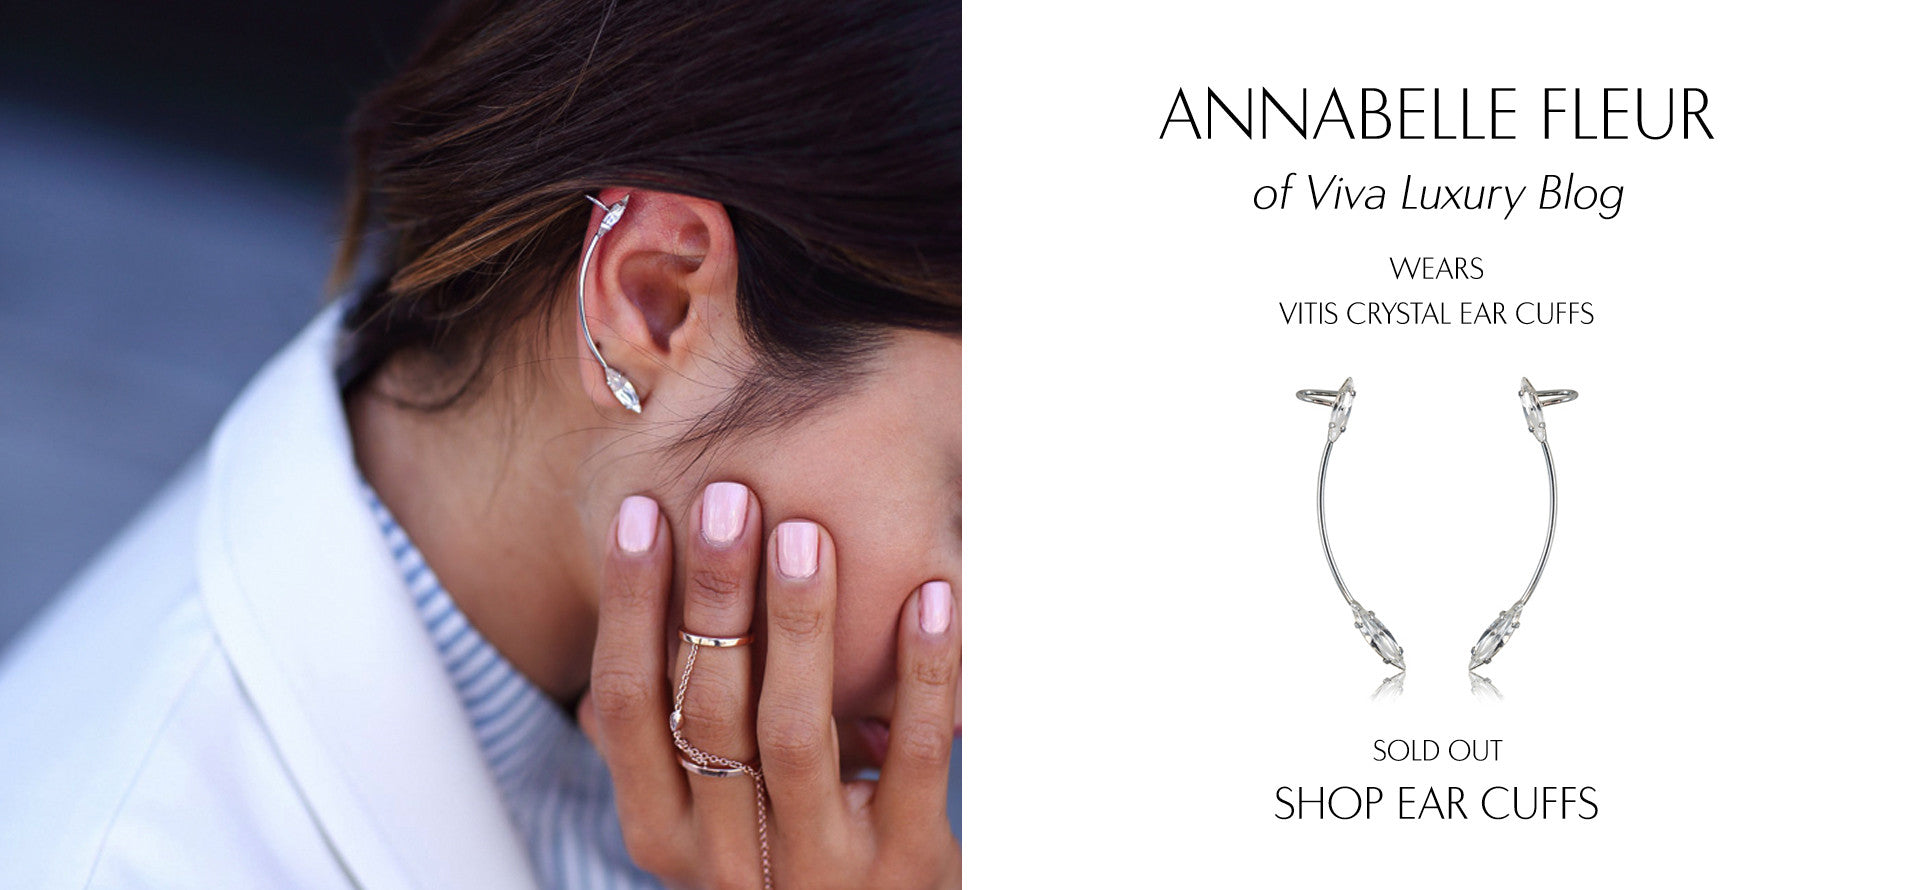 VivaLuxury - Fashion Blog by Annabelle Fleur wears Sarina Suriano crystal vitis earcuffs